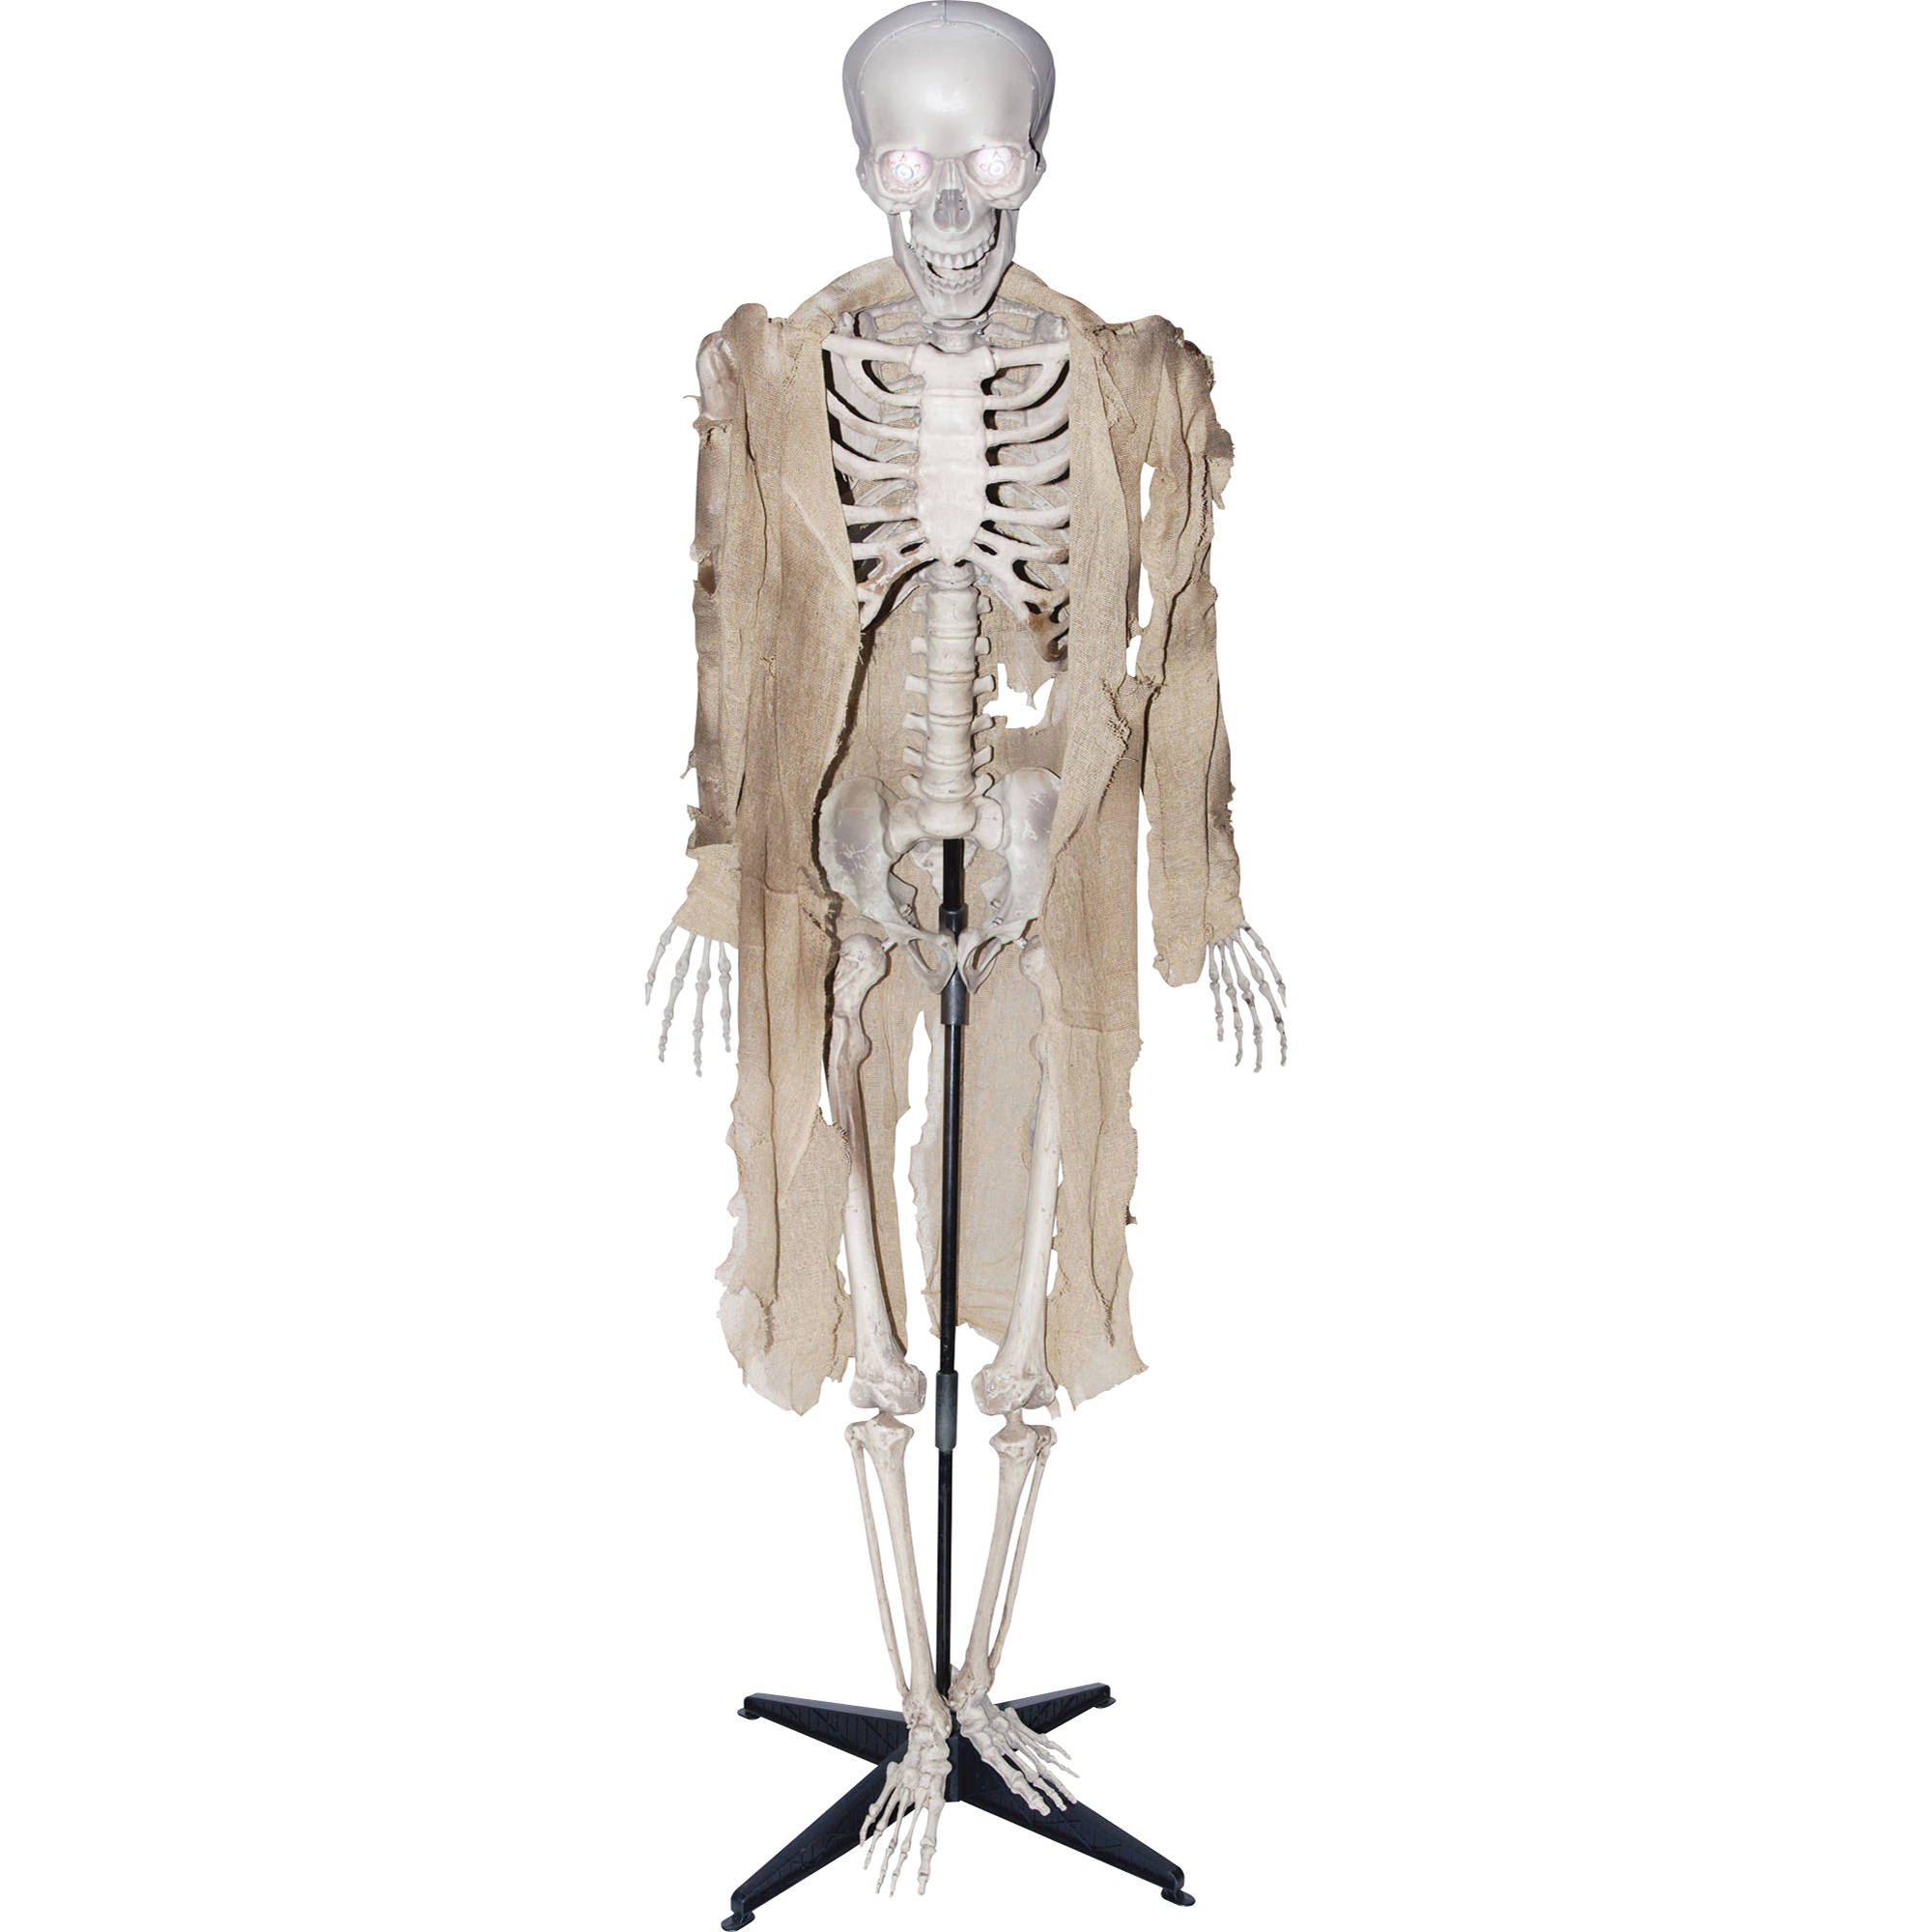 talking skeleton halloween decoration walmartcom - Skeleton Halloween Decoration